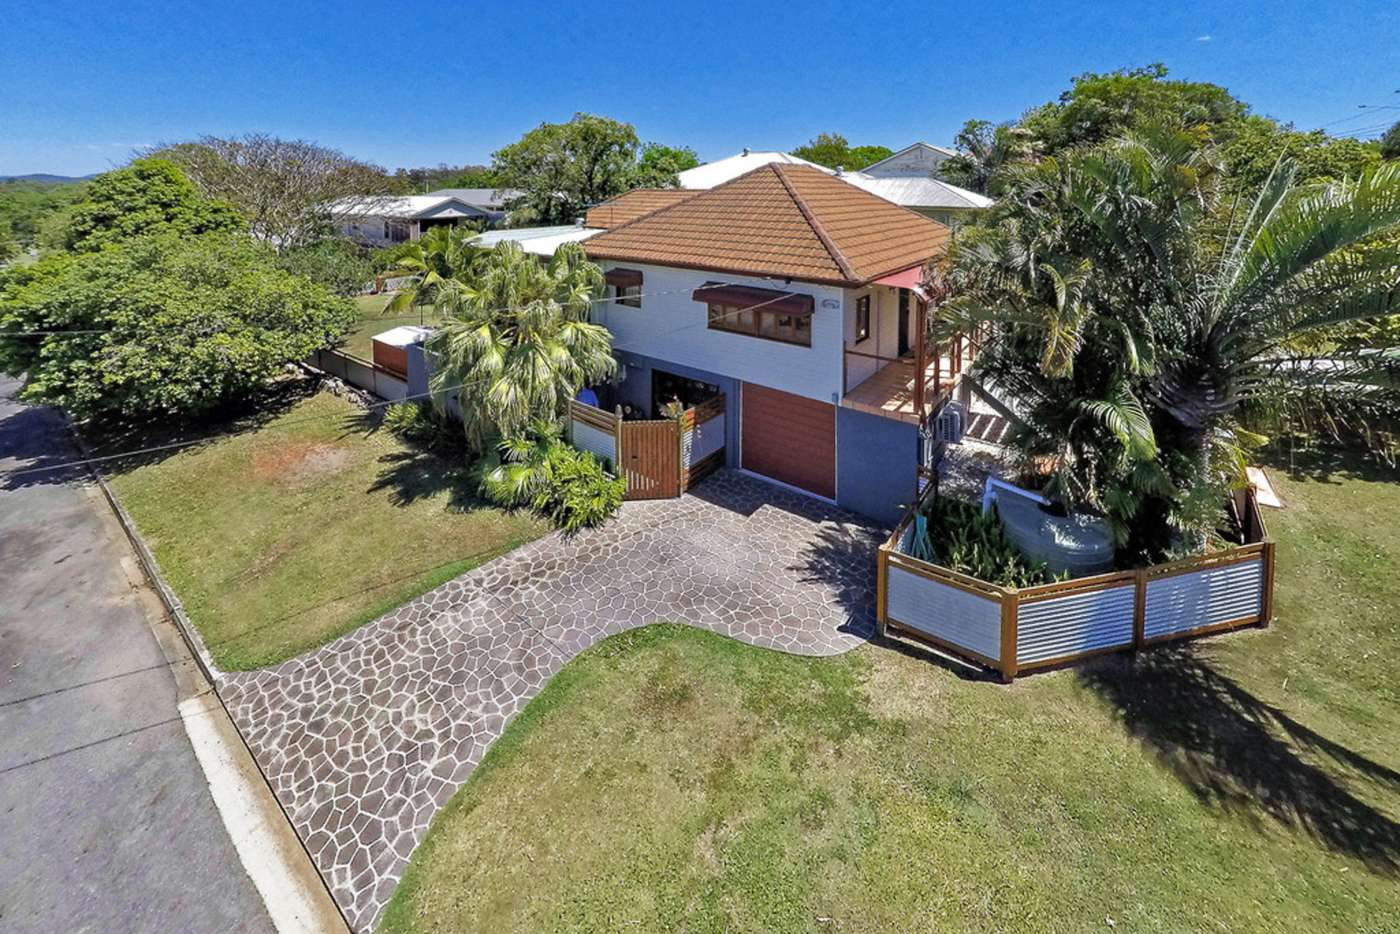 Main view of Homely house listing, 2 Dundonald Street, Everton Park QLD 4053